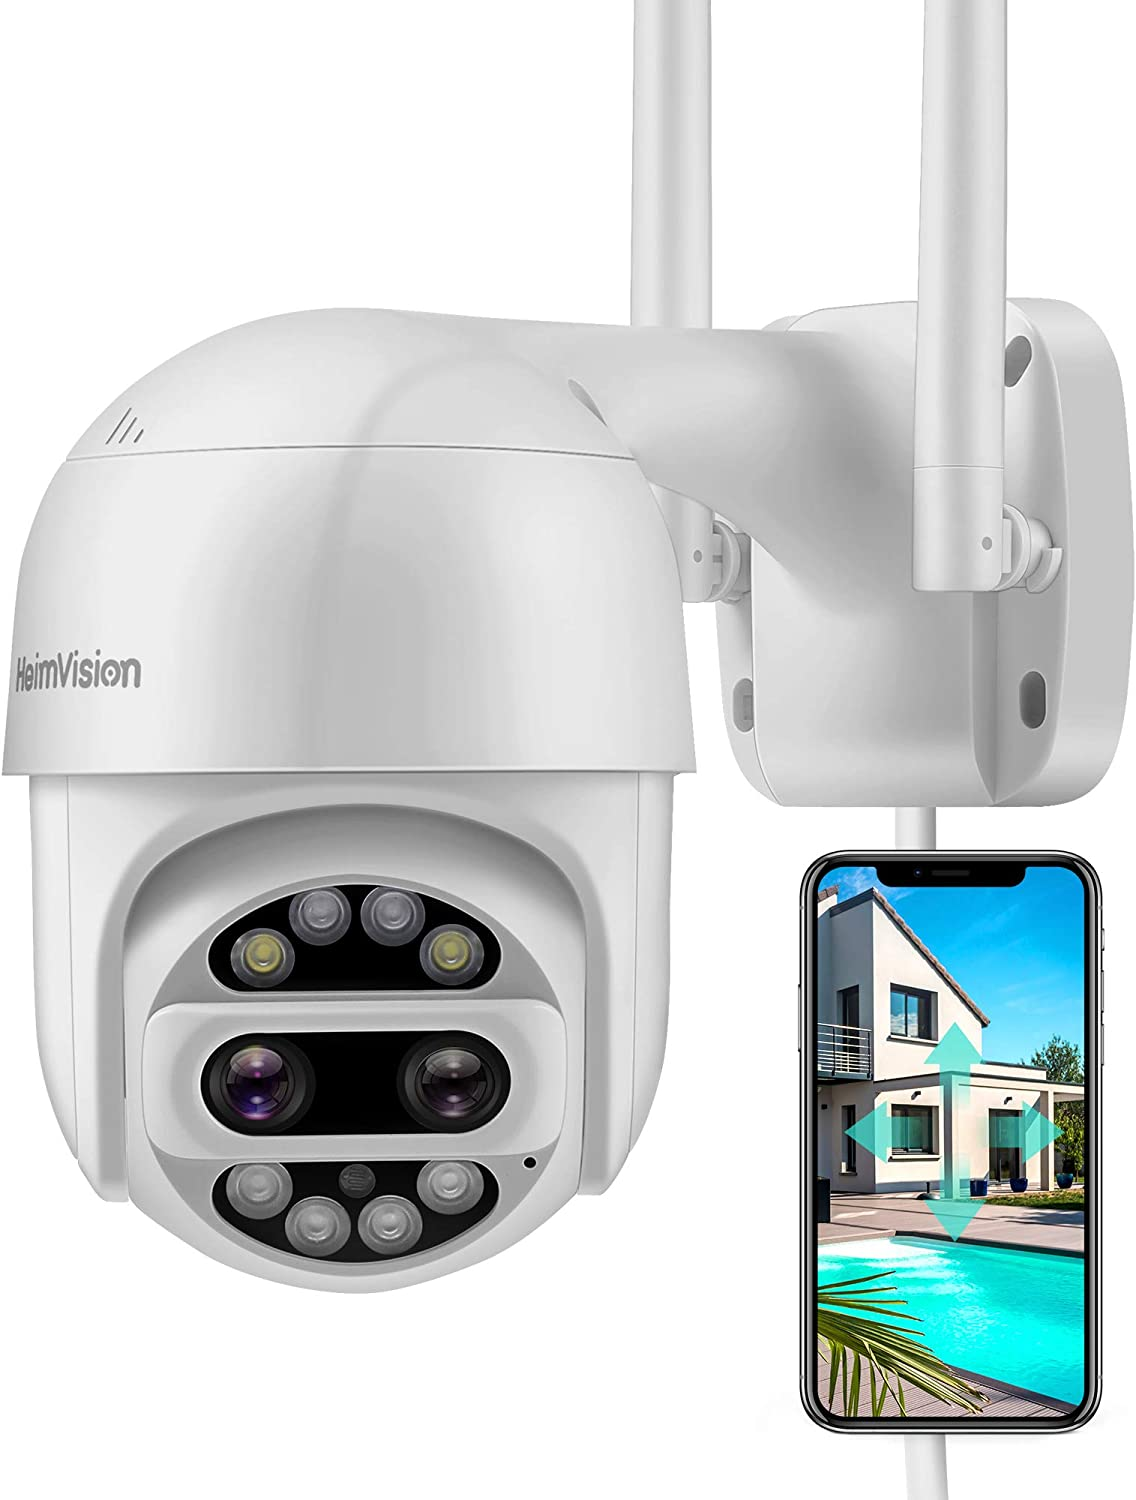 HeimVision PTZ Security Camera Outdoor, 2x2MP Ultra HD Dual Lens, Pan/Tilt/12X Zoom, 360° View, Wi-Fi Wireless Camera with Floodlights, Color Night Vision, 2-Way Audio, Motion Detection, Weatherproof